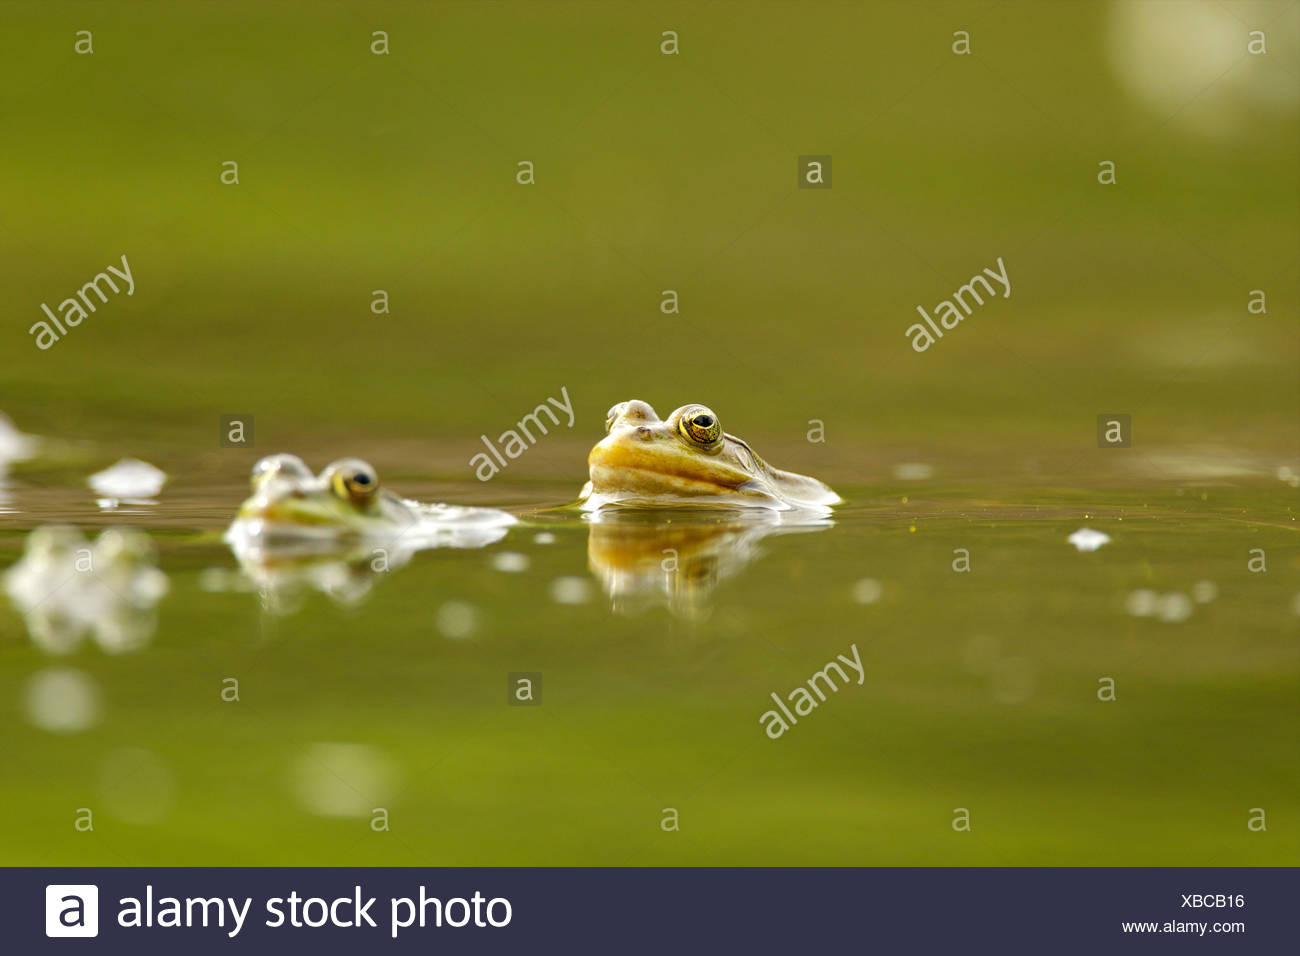 Mating frogs in water, Danube Delta, Romania - Stock Image